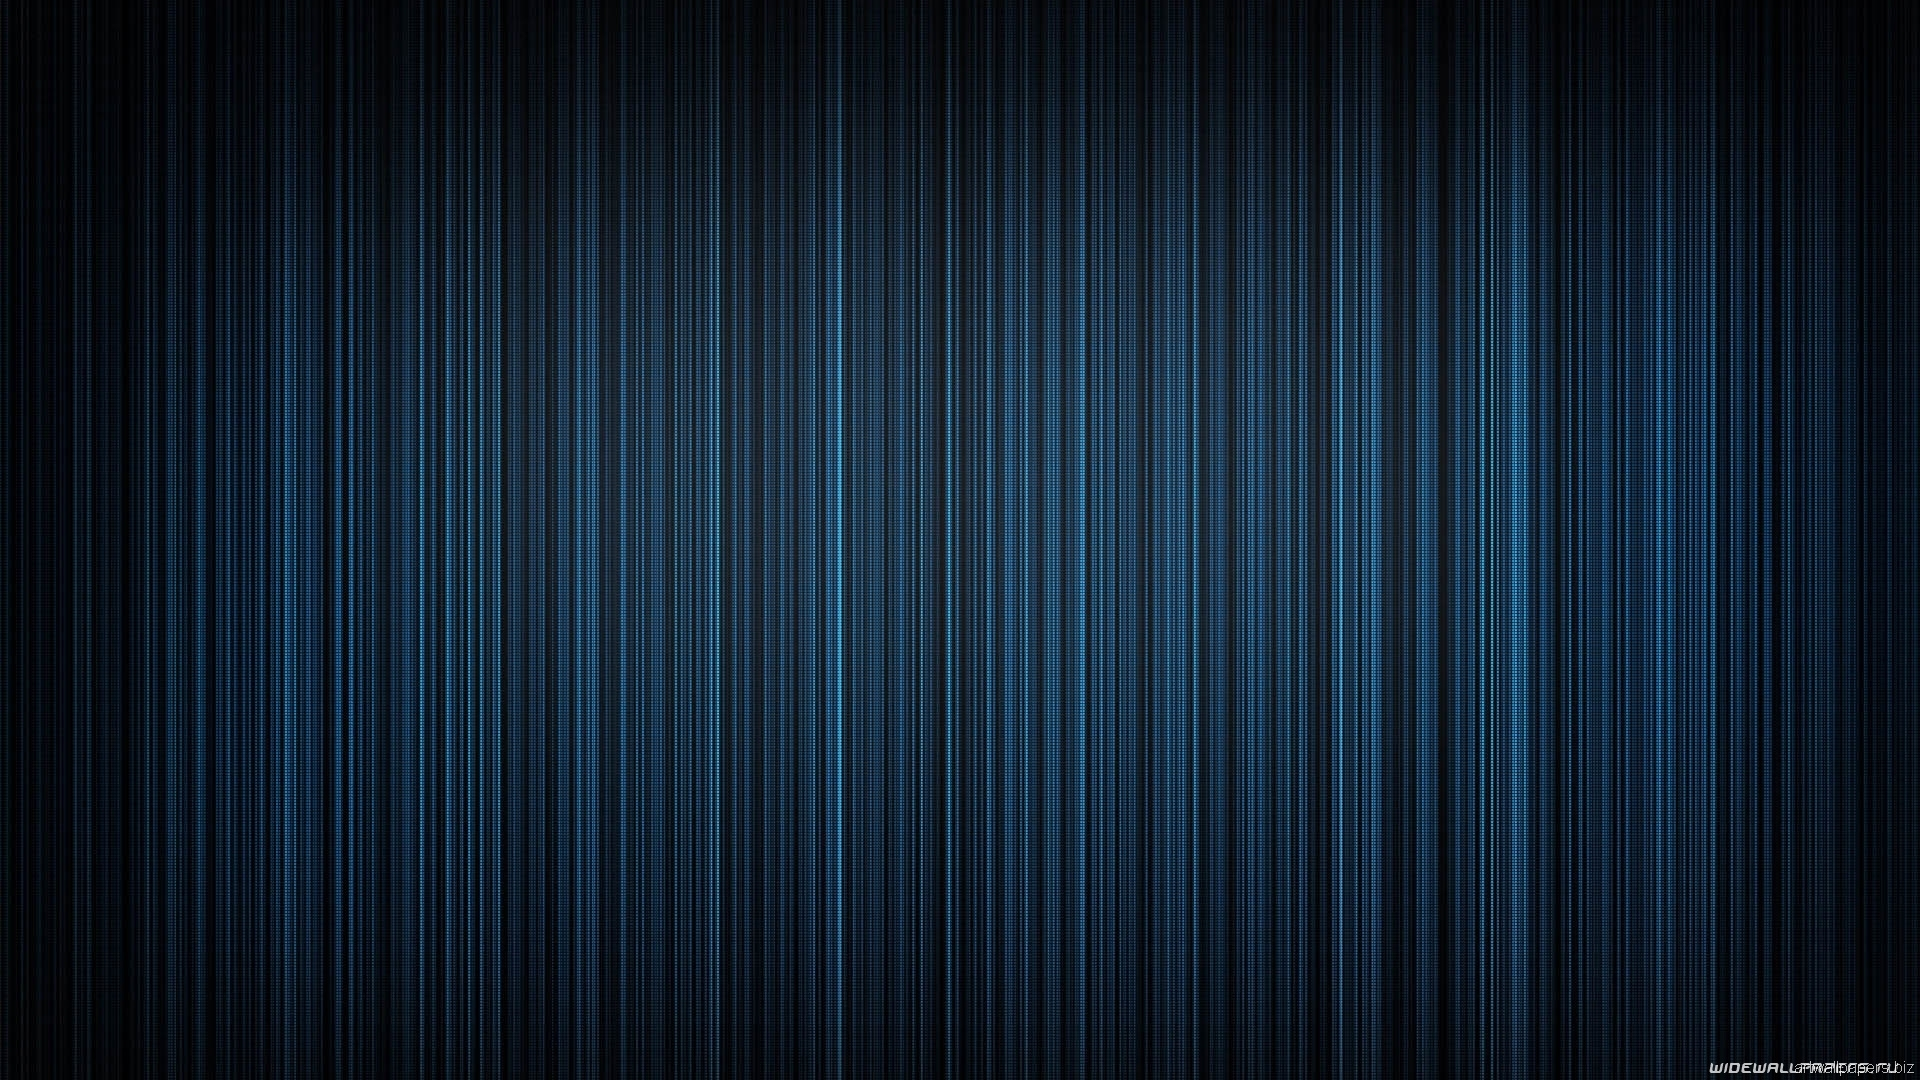 New background images environment free wallpaper - Abstract Lines High Definition Wallpapers